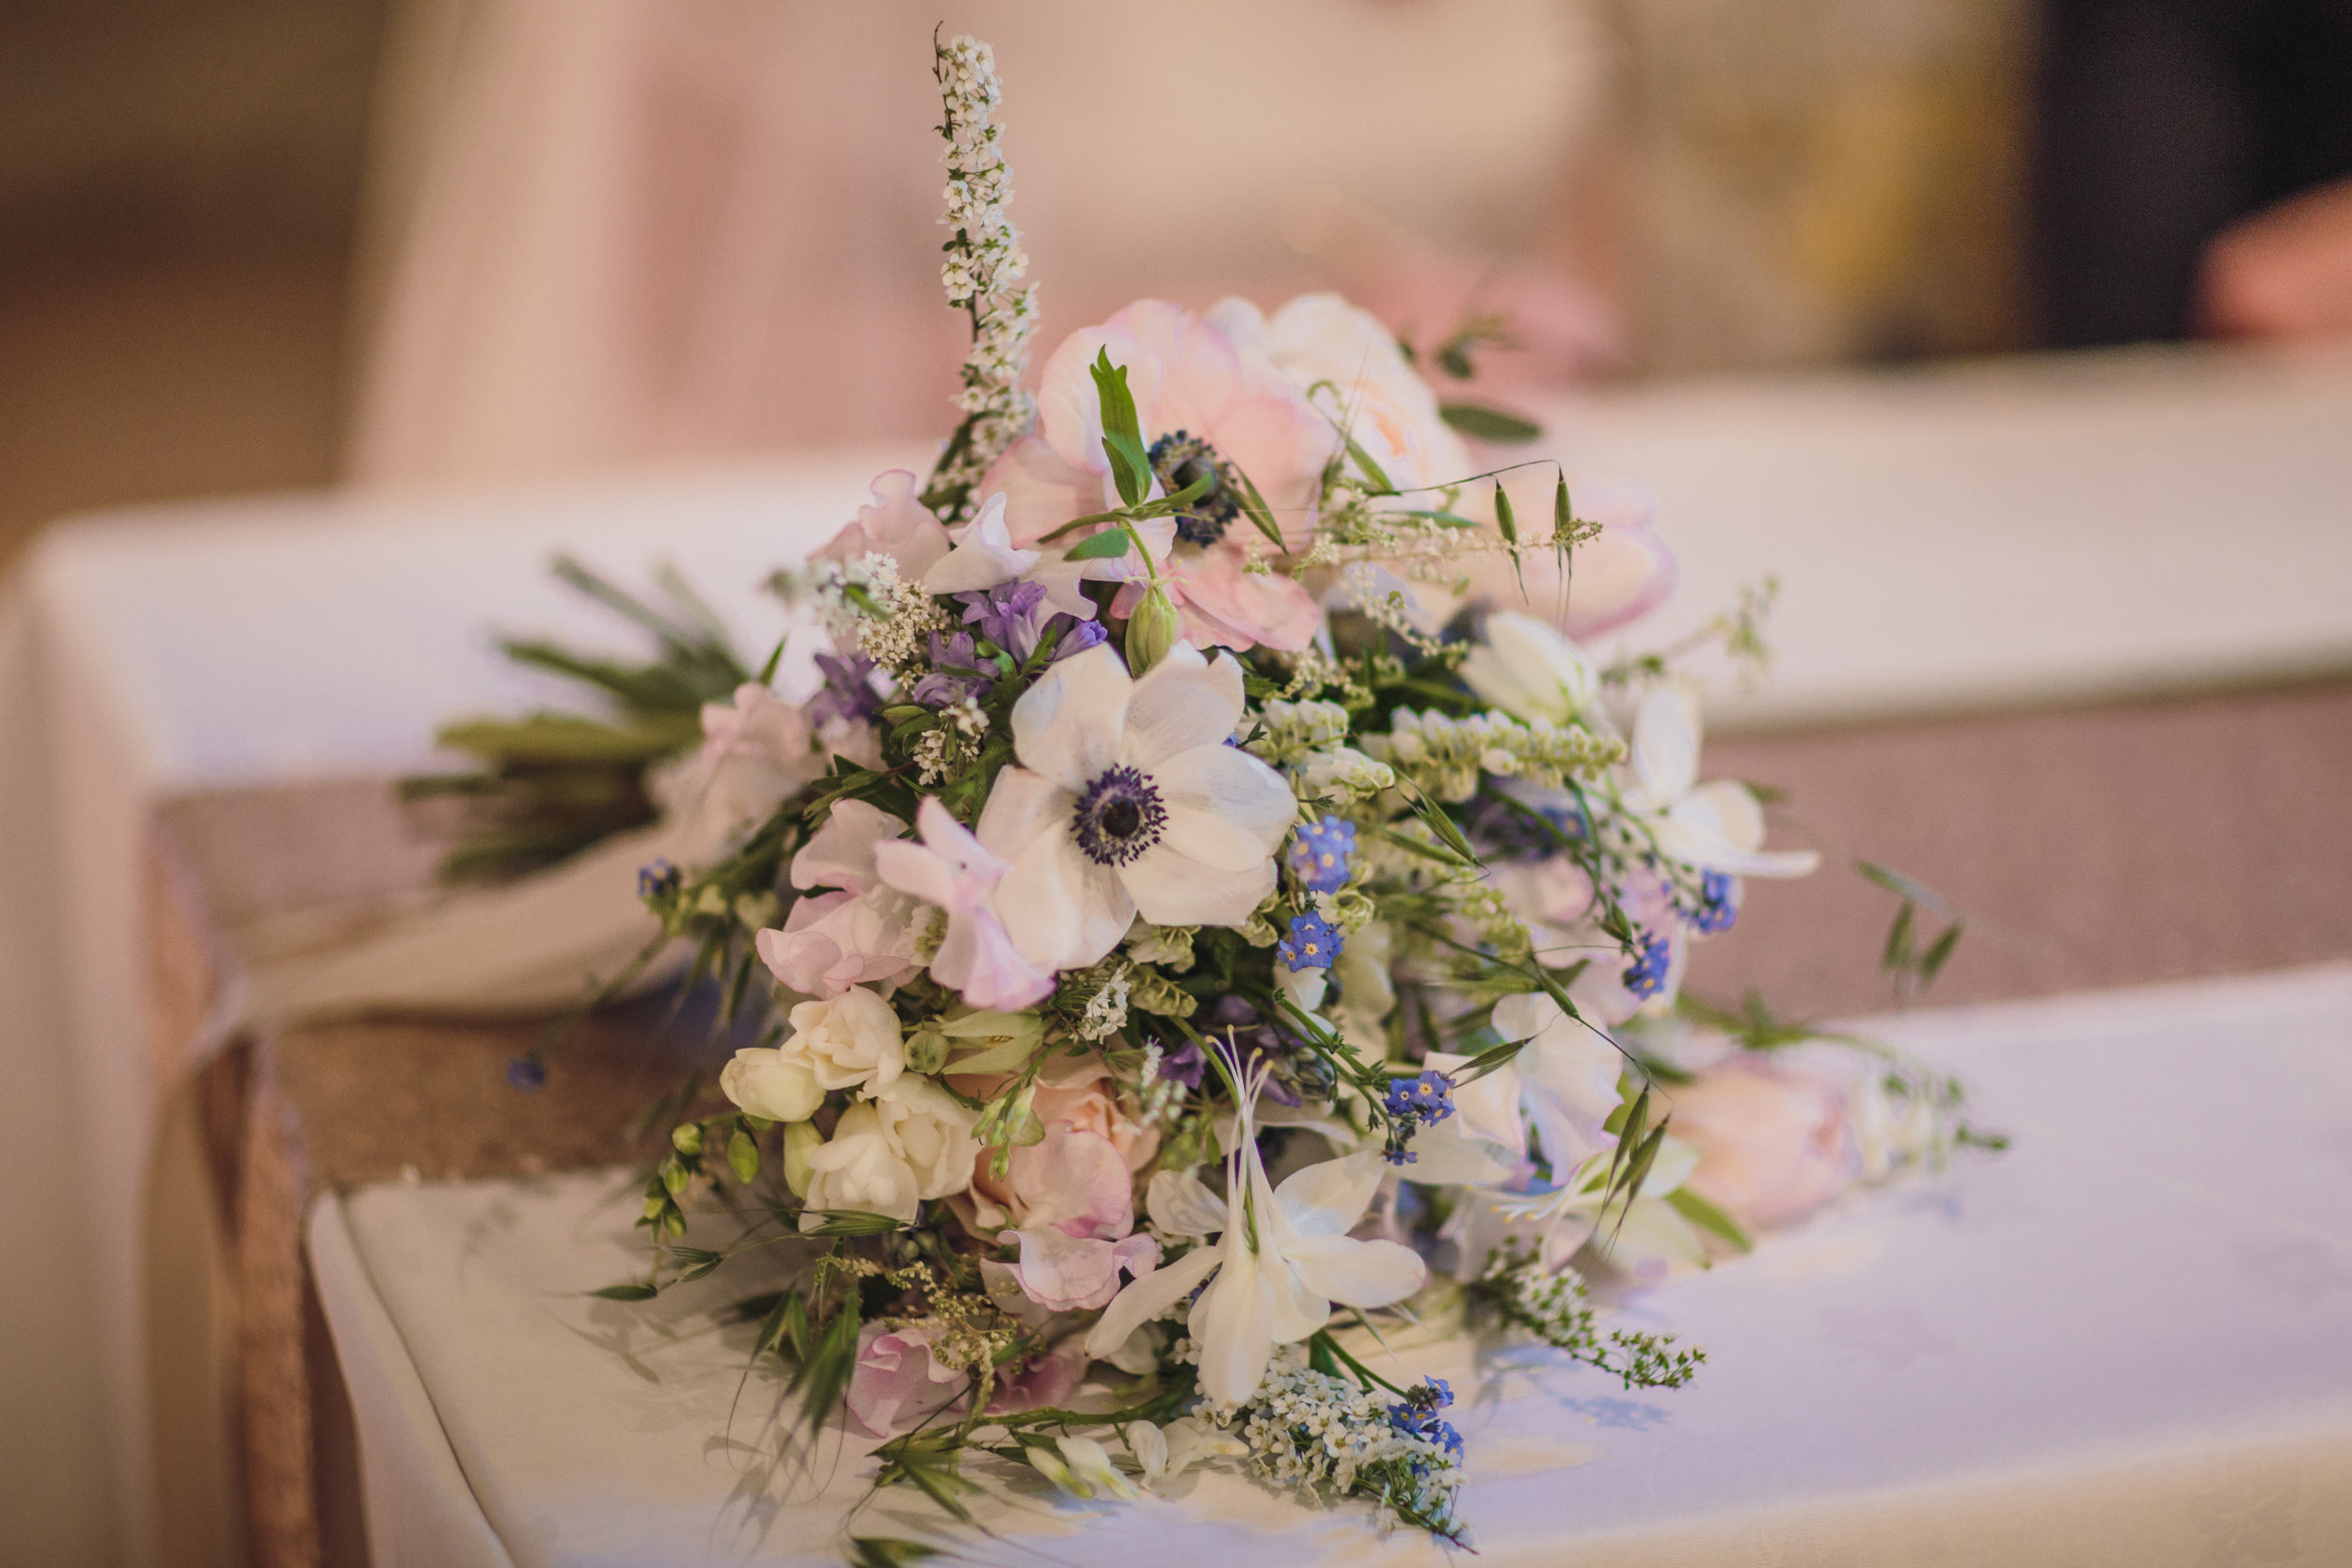 One from April Melissa's gorgeous bouquet with lots of spirea and forget me not. Textural and heavenly scented.